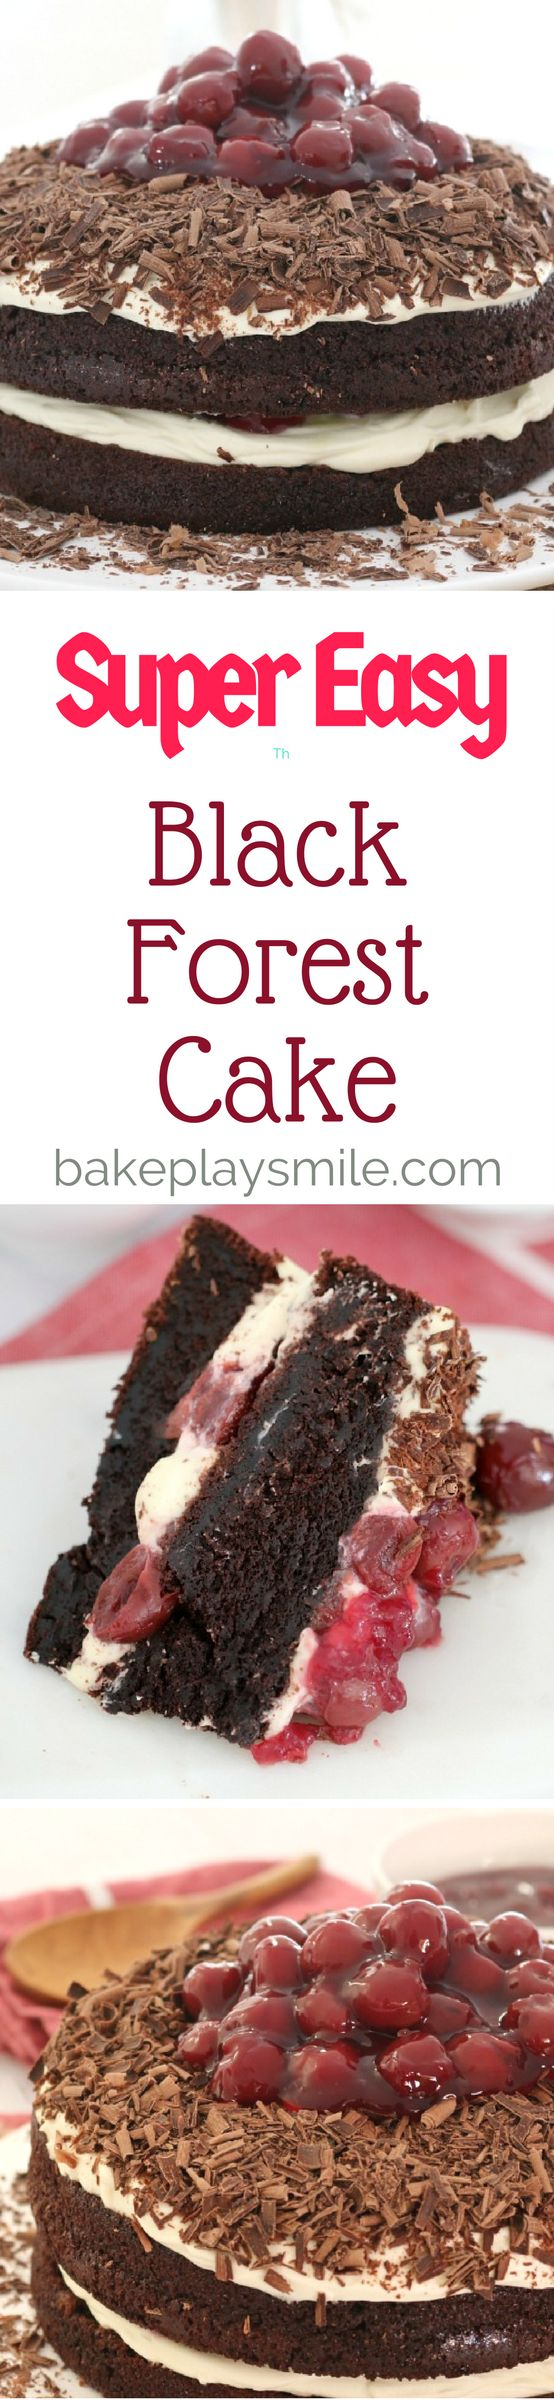 Easy Thermomix Black Forest Cake  This Black Forest Cake is made with the most delicious layers of rich and fudgy chocolate cake, softly whipped cream, morello cherries, and of course, plenty of grated chocolate!   #easy #black #forest #cake #celebration #chocolate #cherry #conventional #thermomix #cream #layered